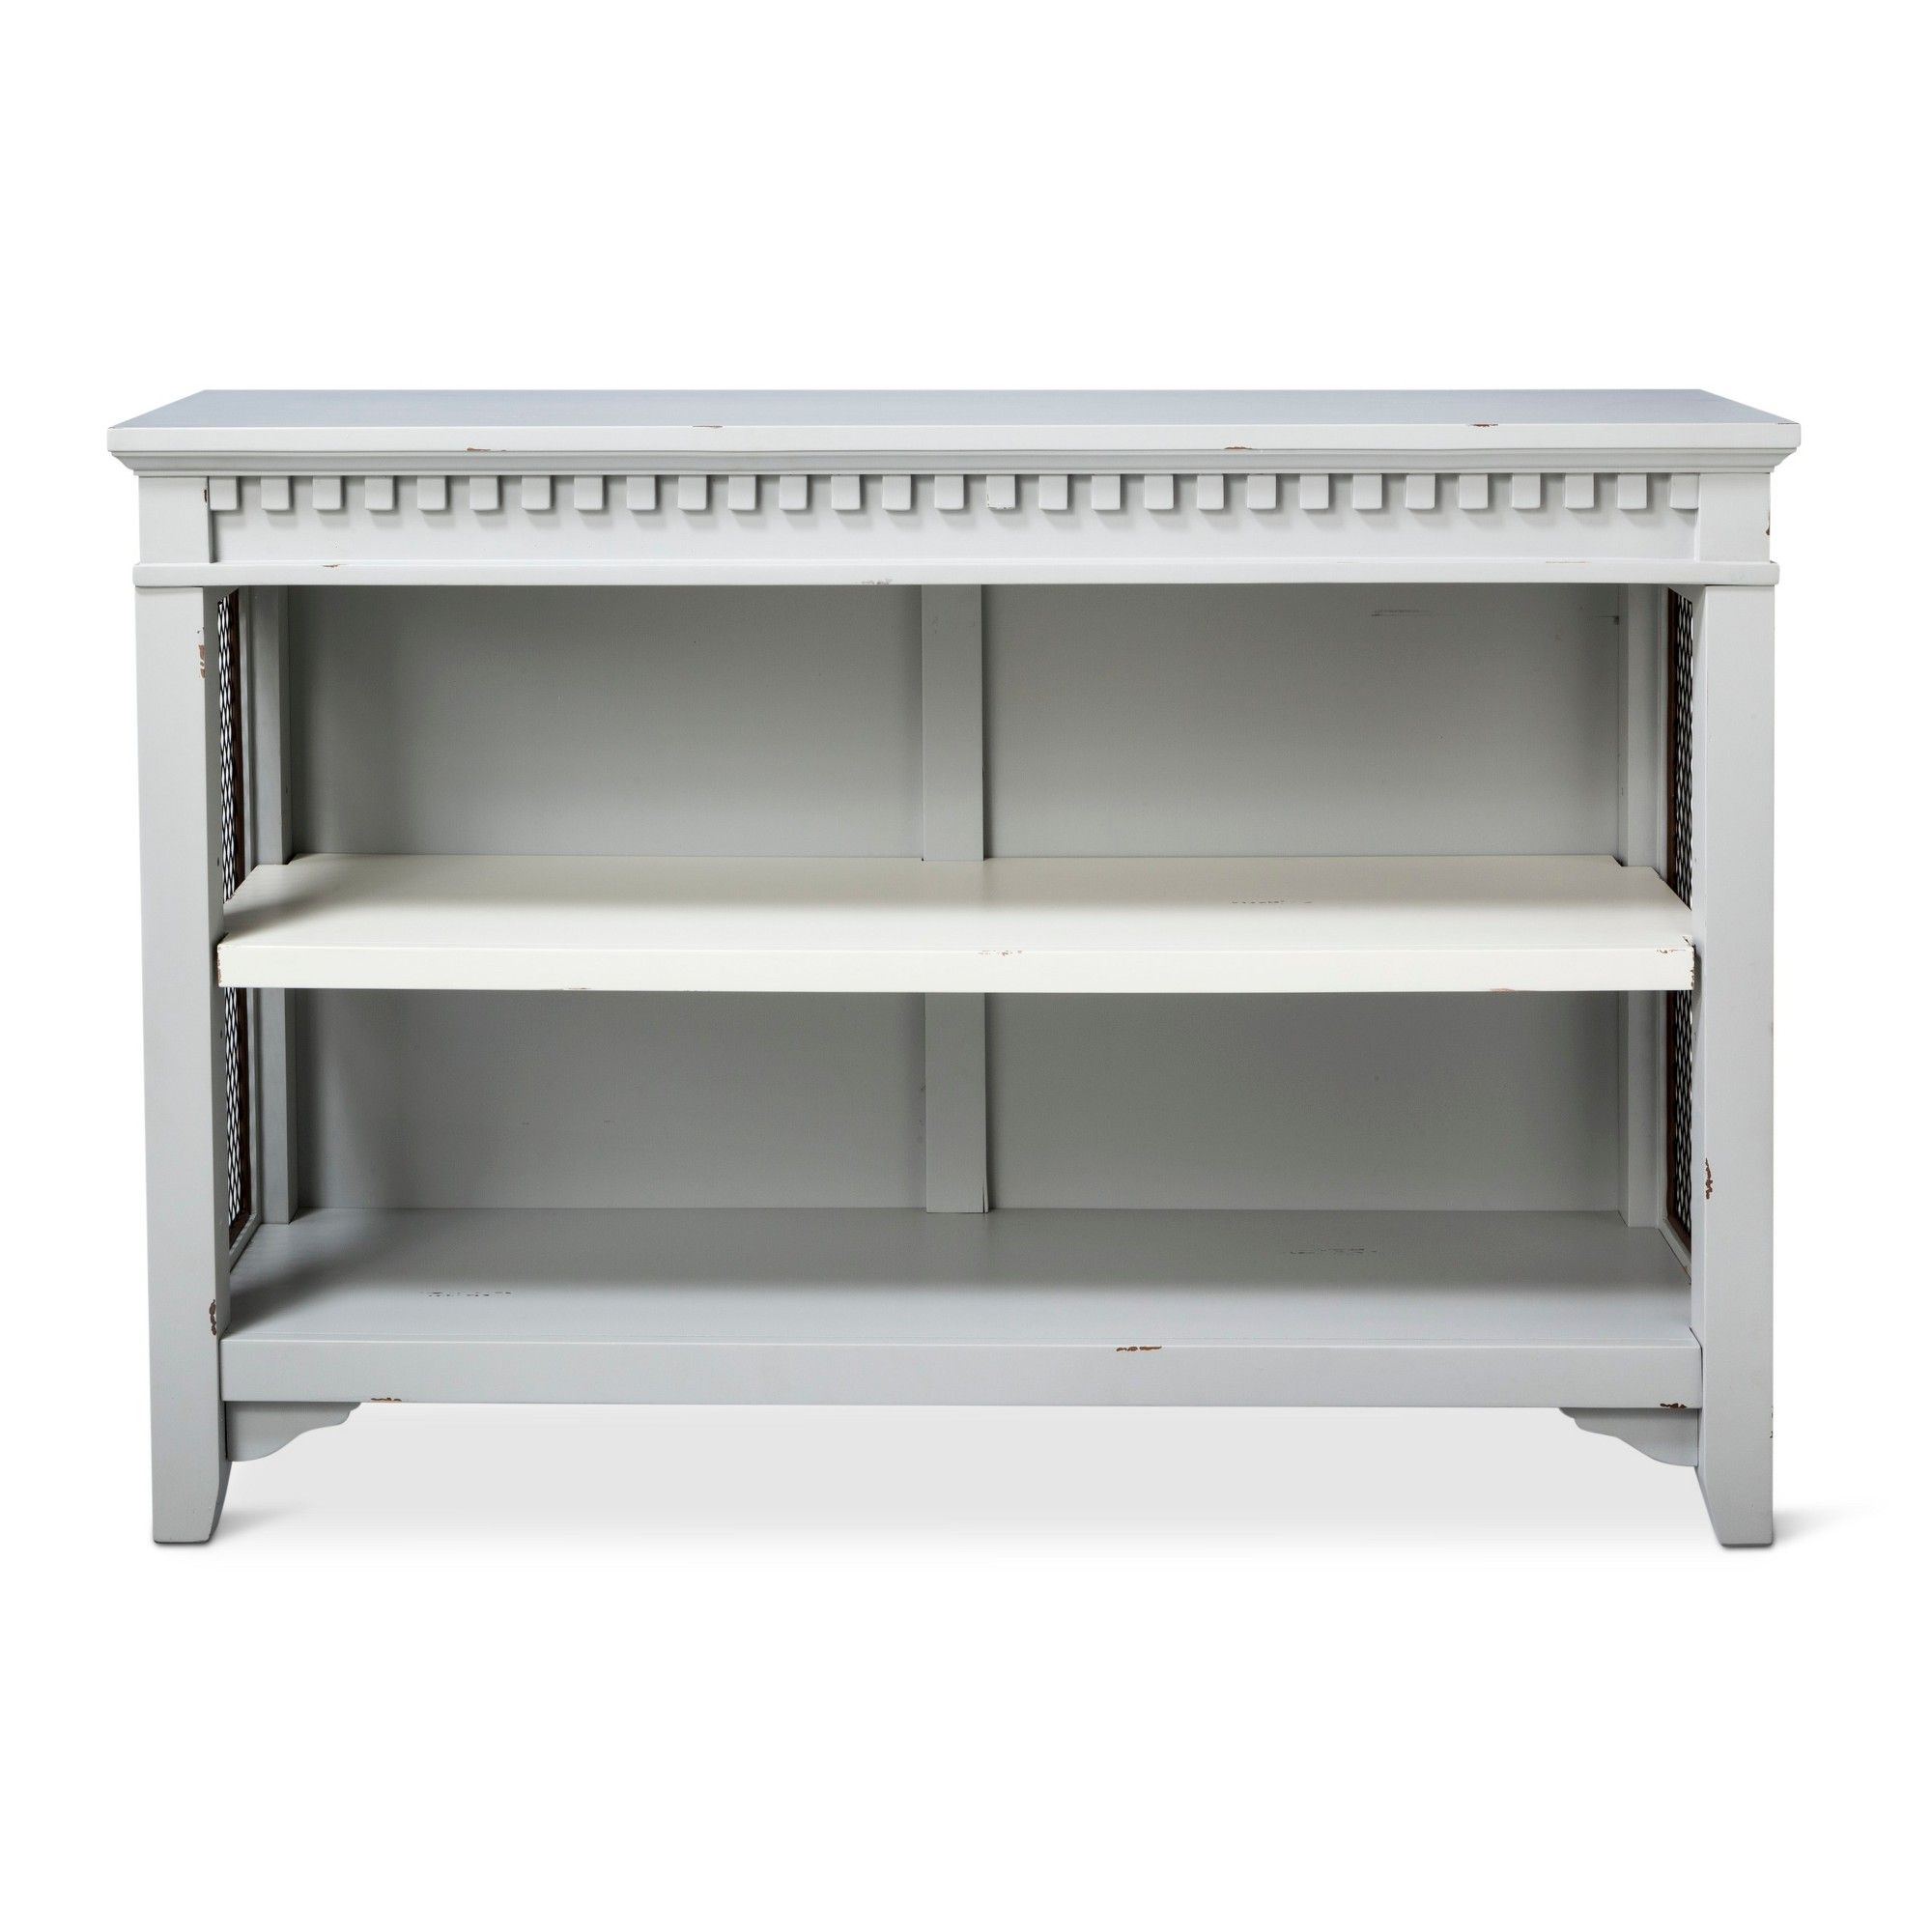 bookcases walmart and colors bookcase white com better storage homes cube organizer horizontal gardens multiple ip